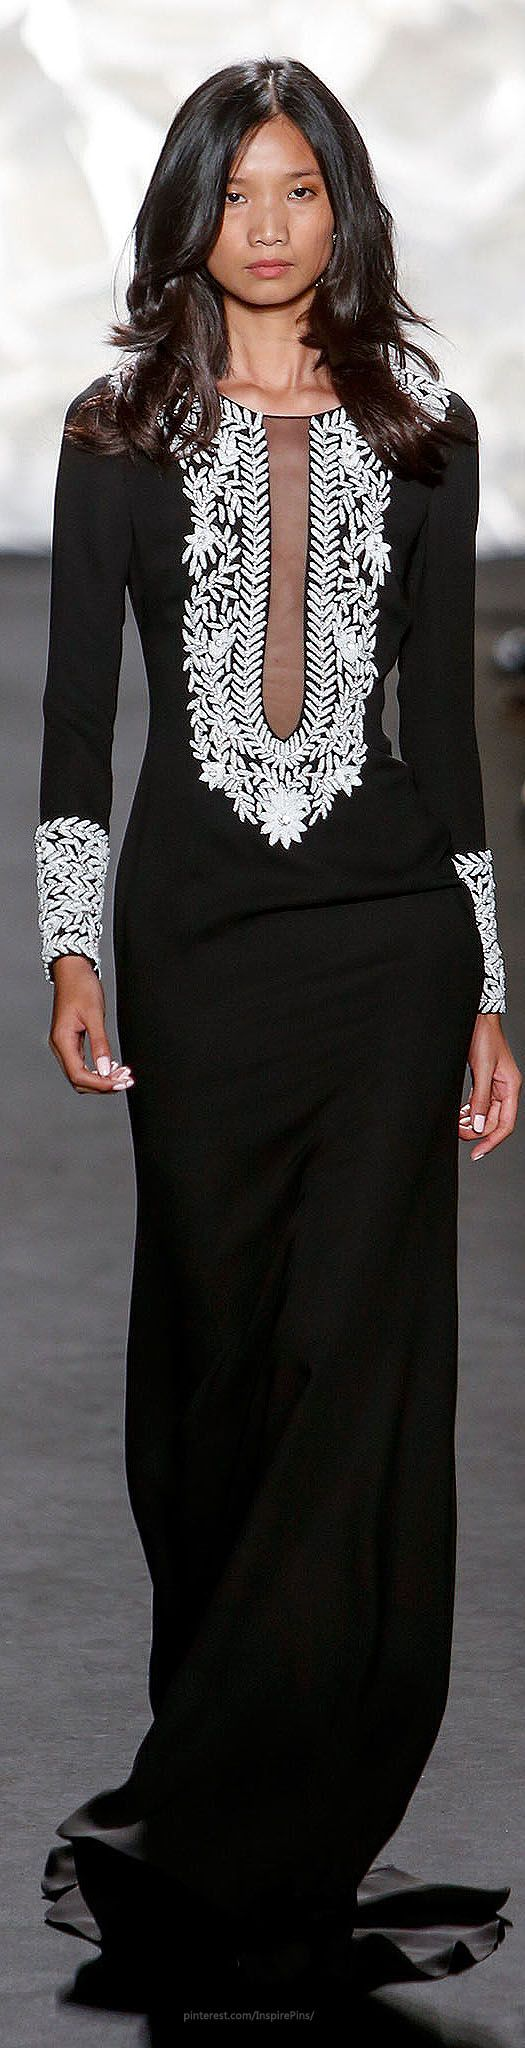 Naeem Khan Spring 2015 Ready-to-Wear. This is a beautiful dress.